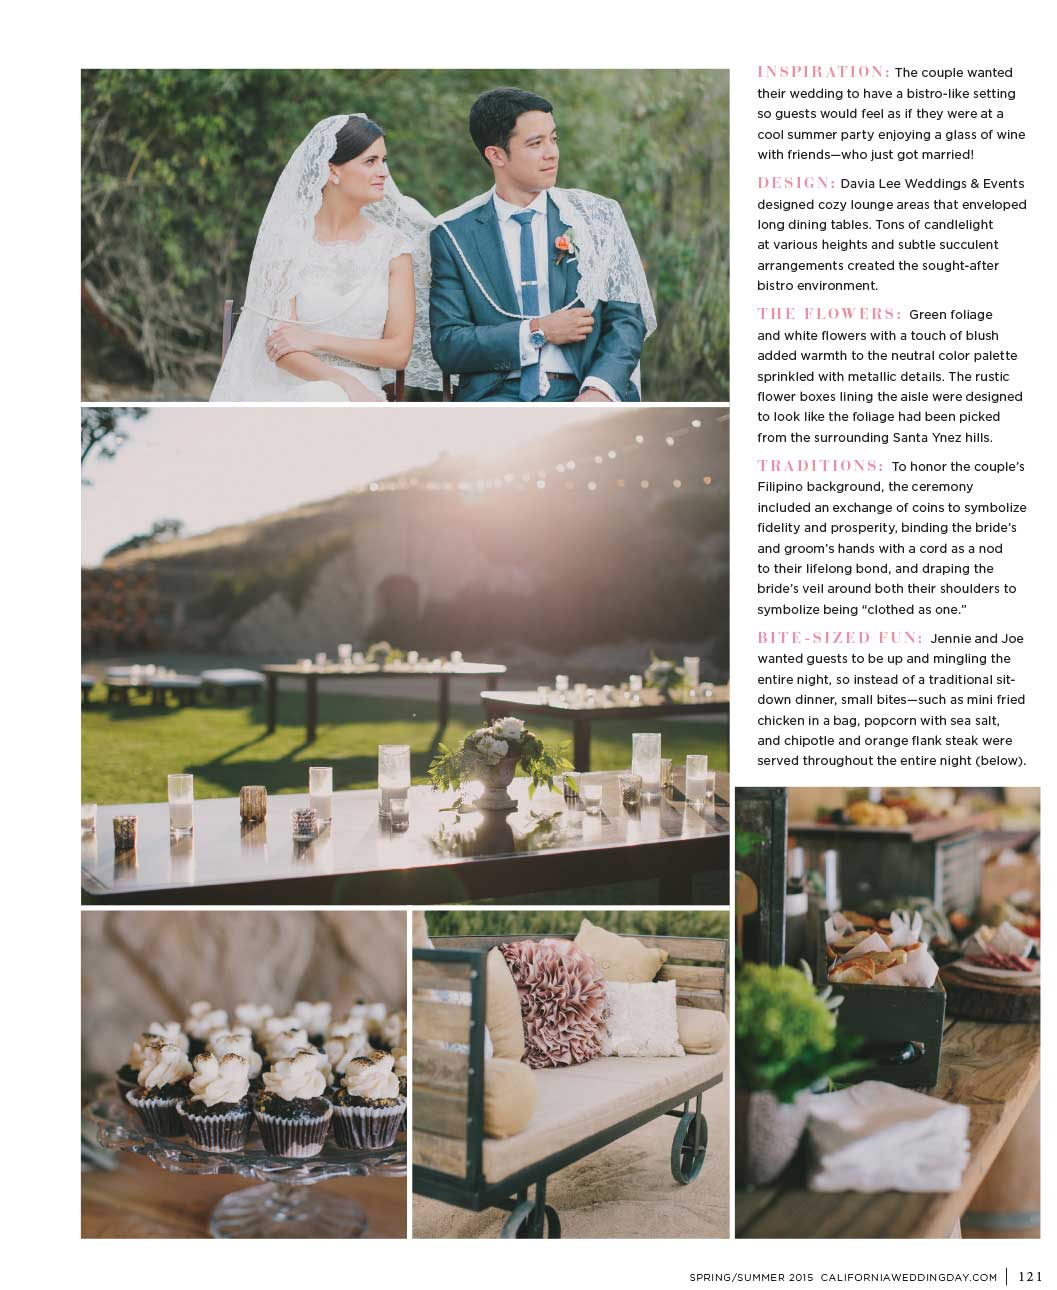 press-page-davia-lee-california-wedding-day-ss2015-p121